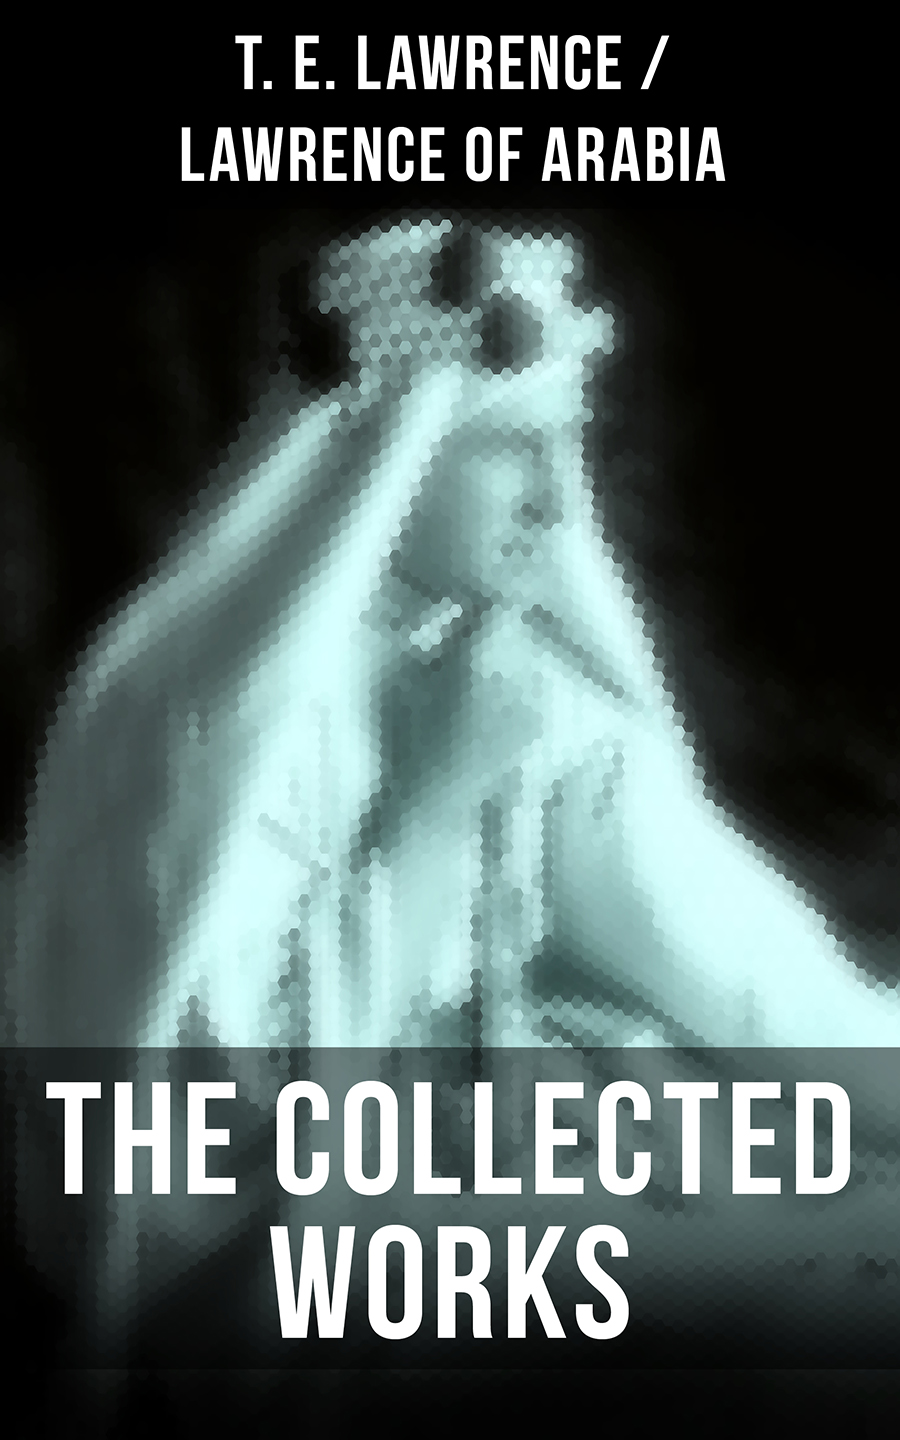 The Collected Works of T. E. Lawrence (Lawrence of Arabia) фото